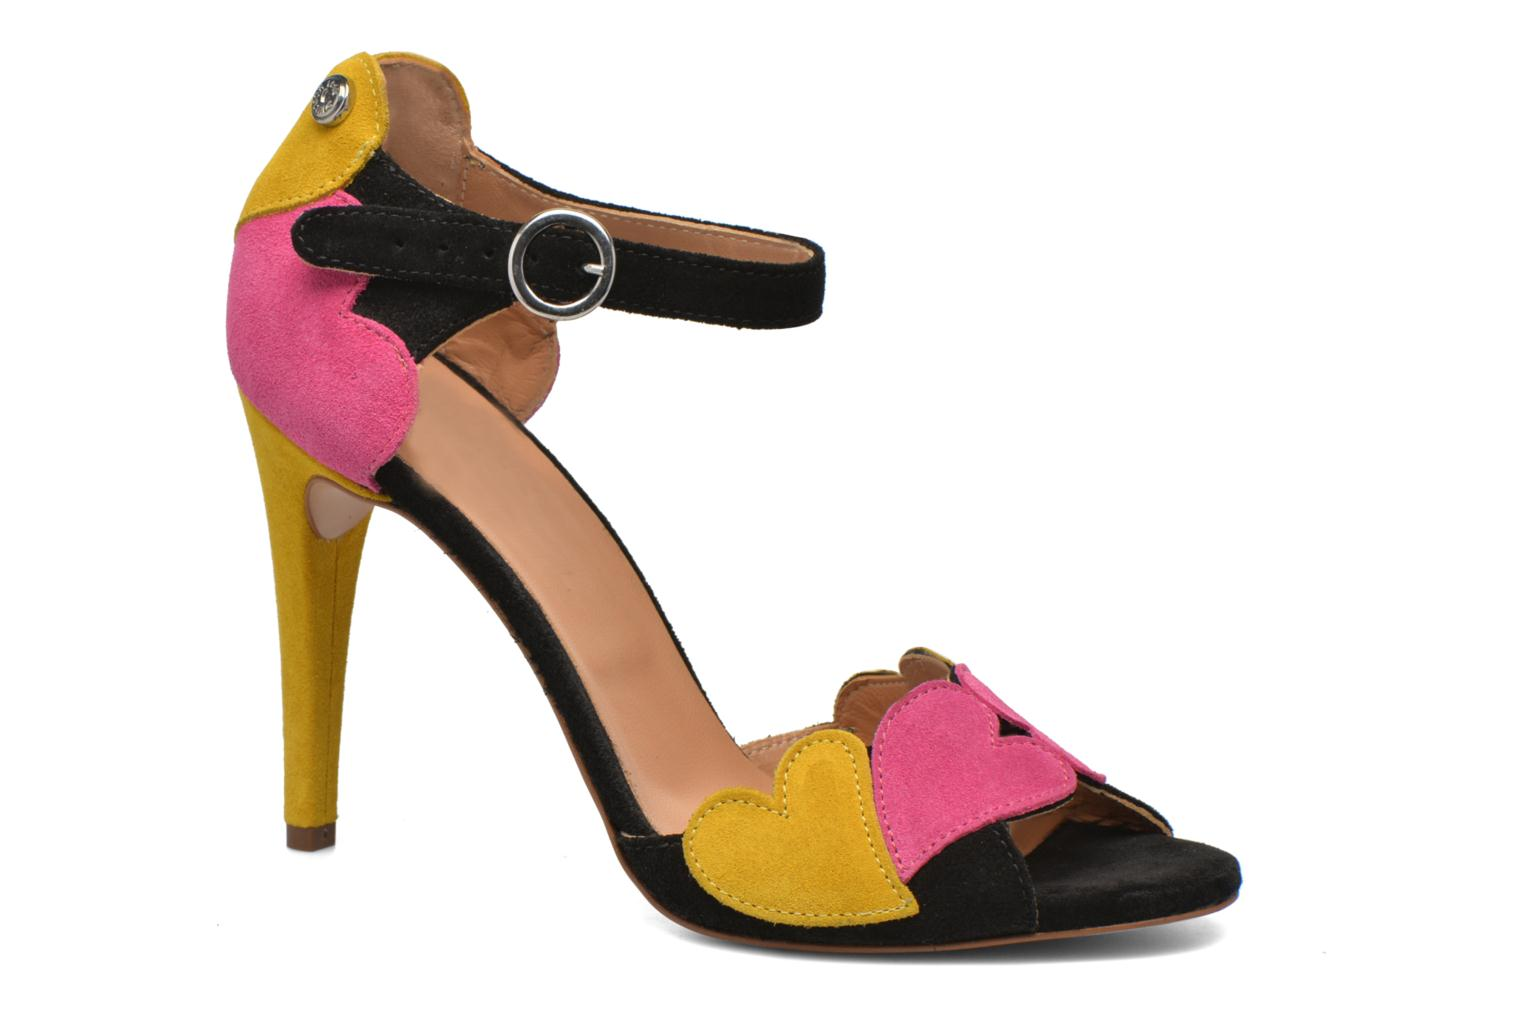 Heart Shaped Sandals Fuschia Black White